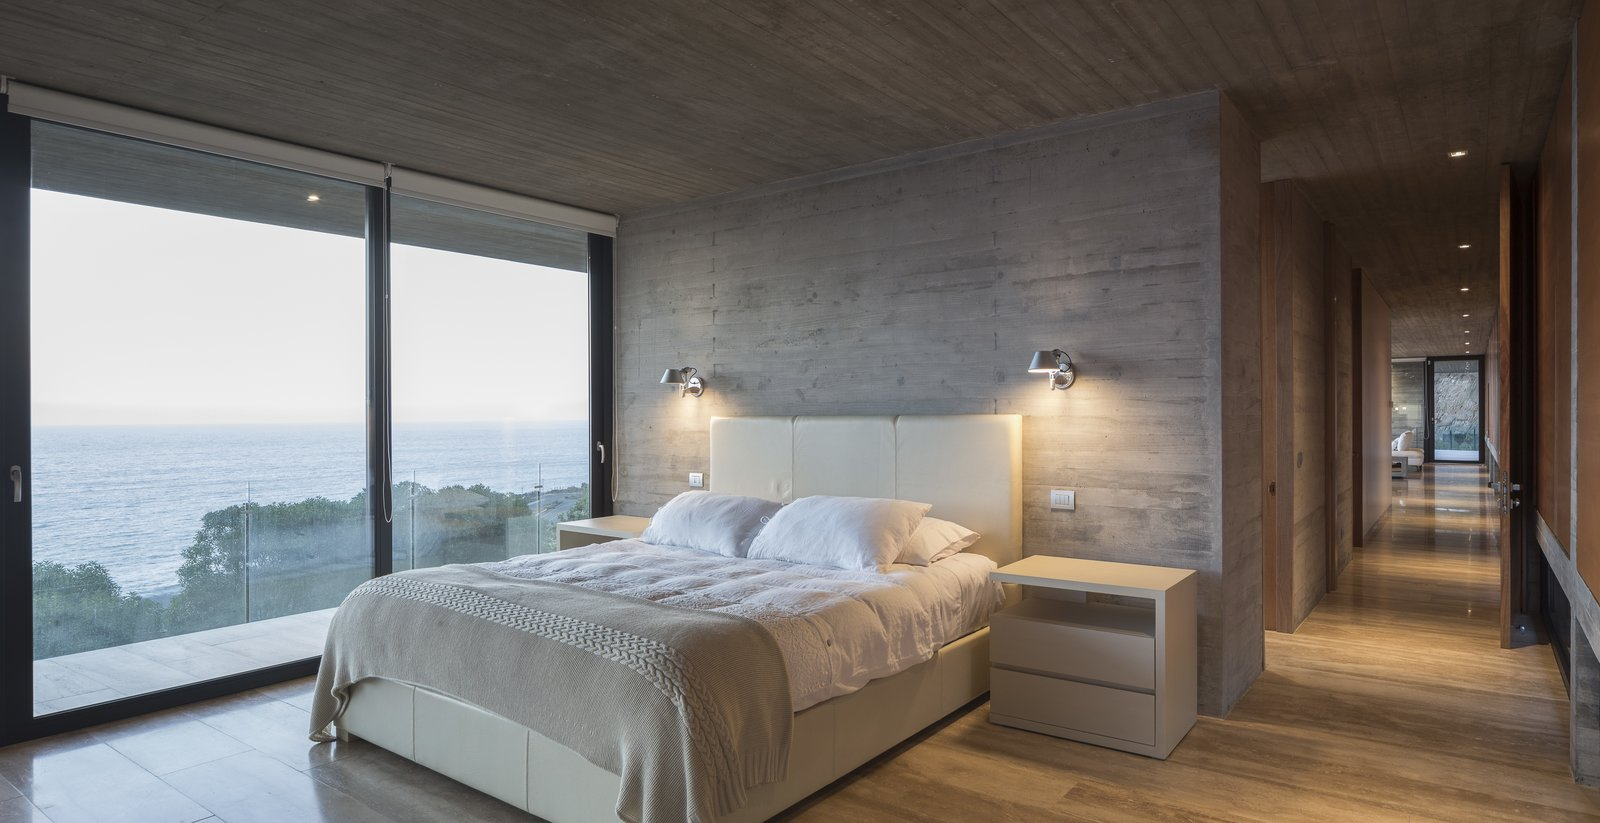 Bedroom, Night Stands, Bed, and Wall Lighting The master bedroom with an ensuite bathroom is also located on the access level.    Photo 9 of 14 in This Chilean Concrete Home Levitates Off a Coastal Slope